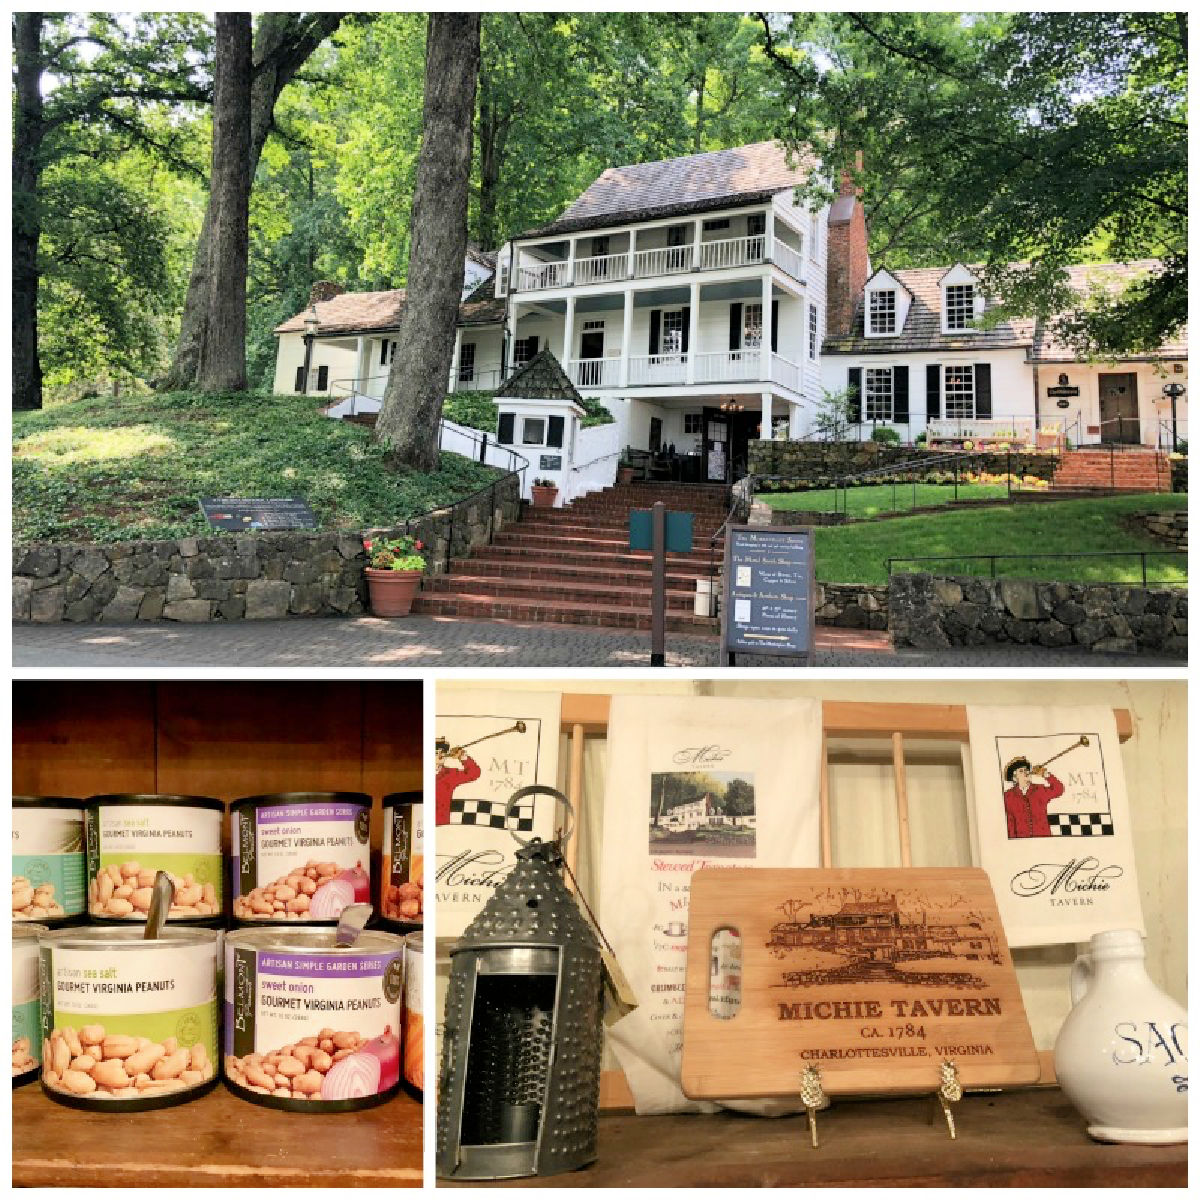 Be sure to have lunch at Michie Tavern while visiting Charlottesville, Virginia for amazing 18th century style foods.